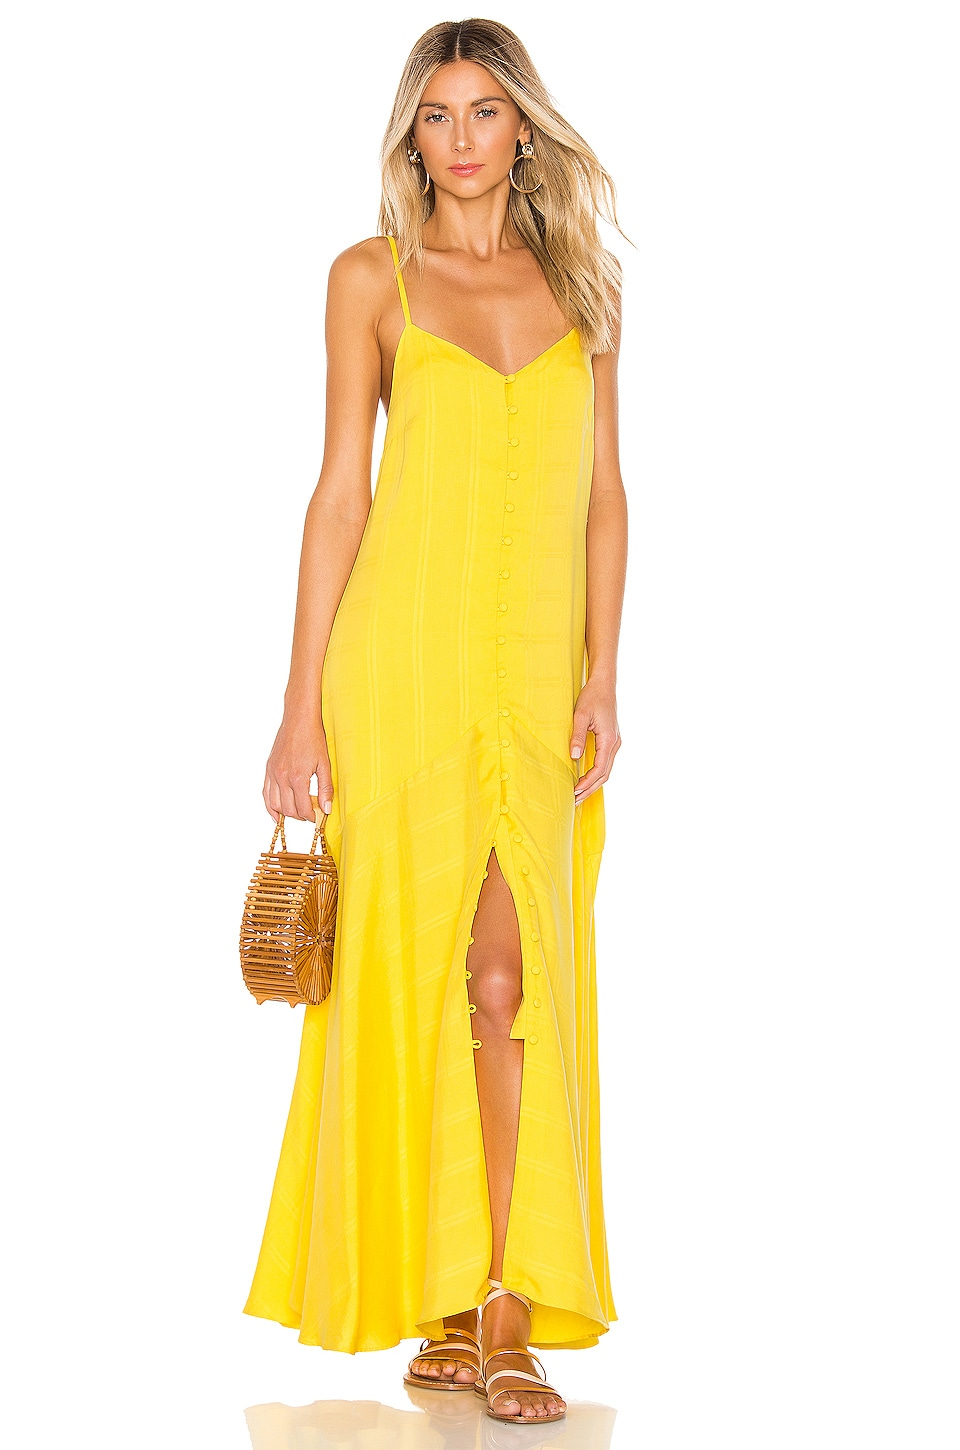 Mara Hoffman Diana Dress in Yellow